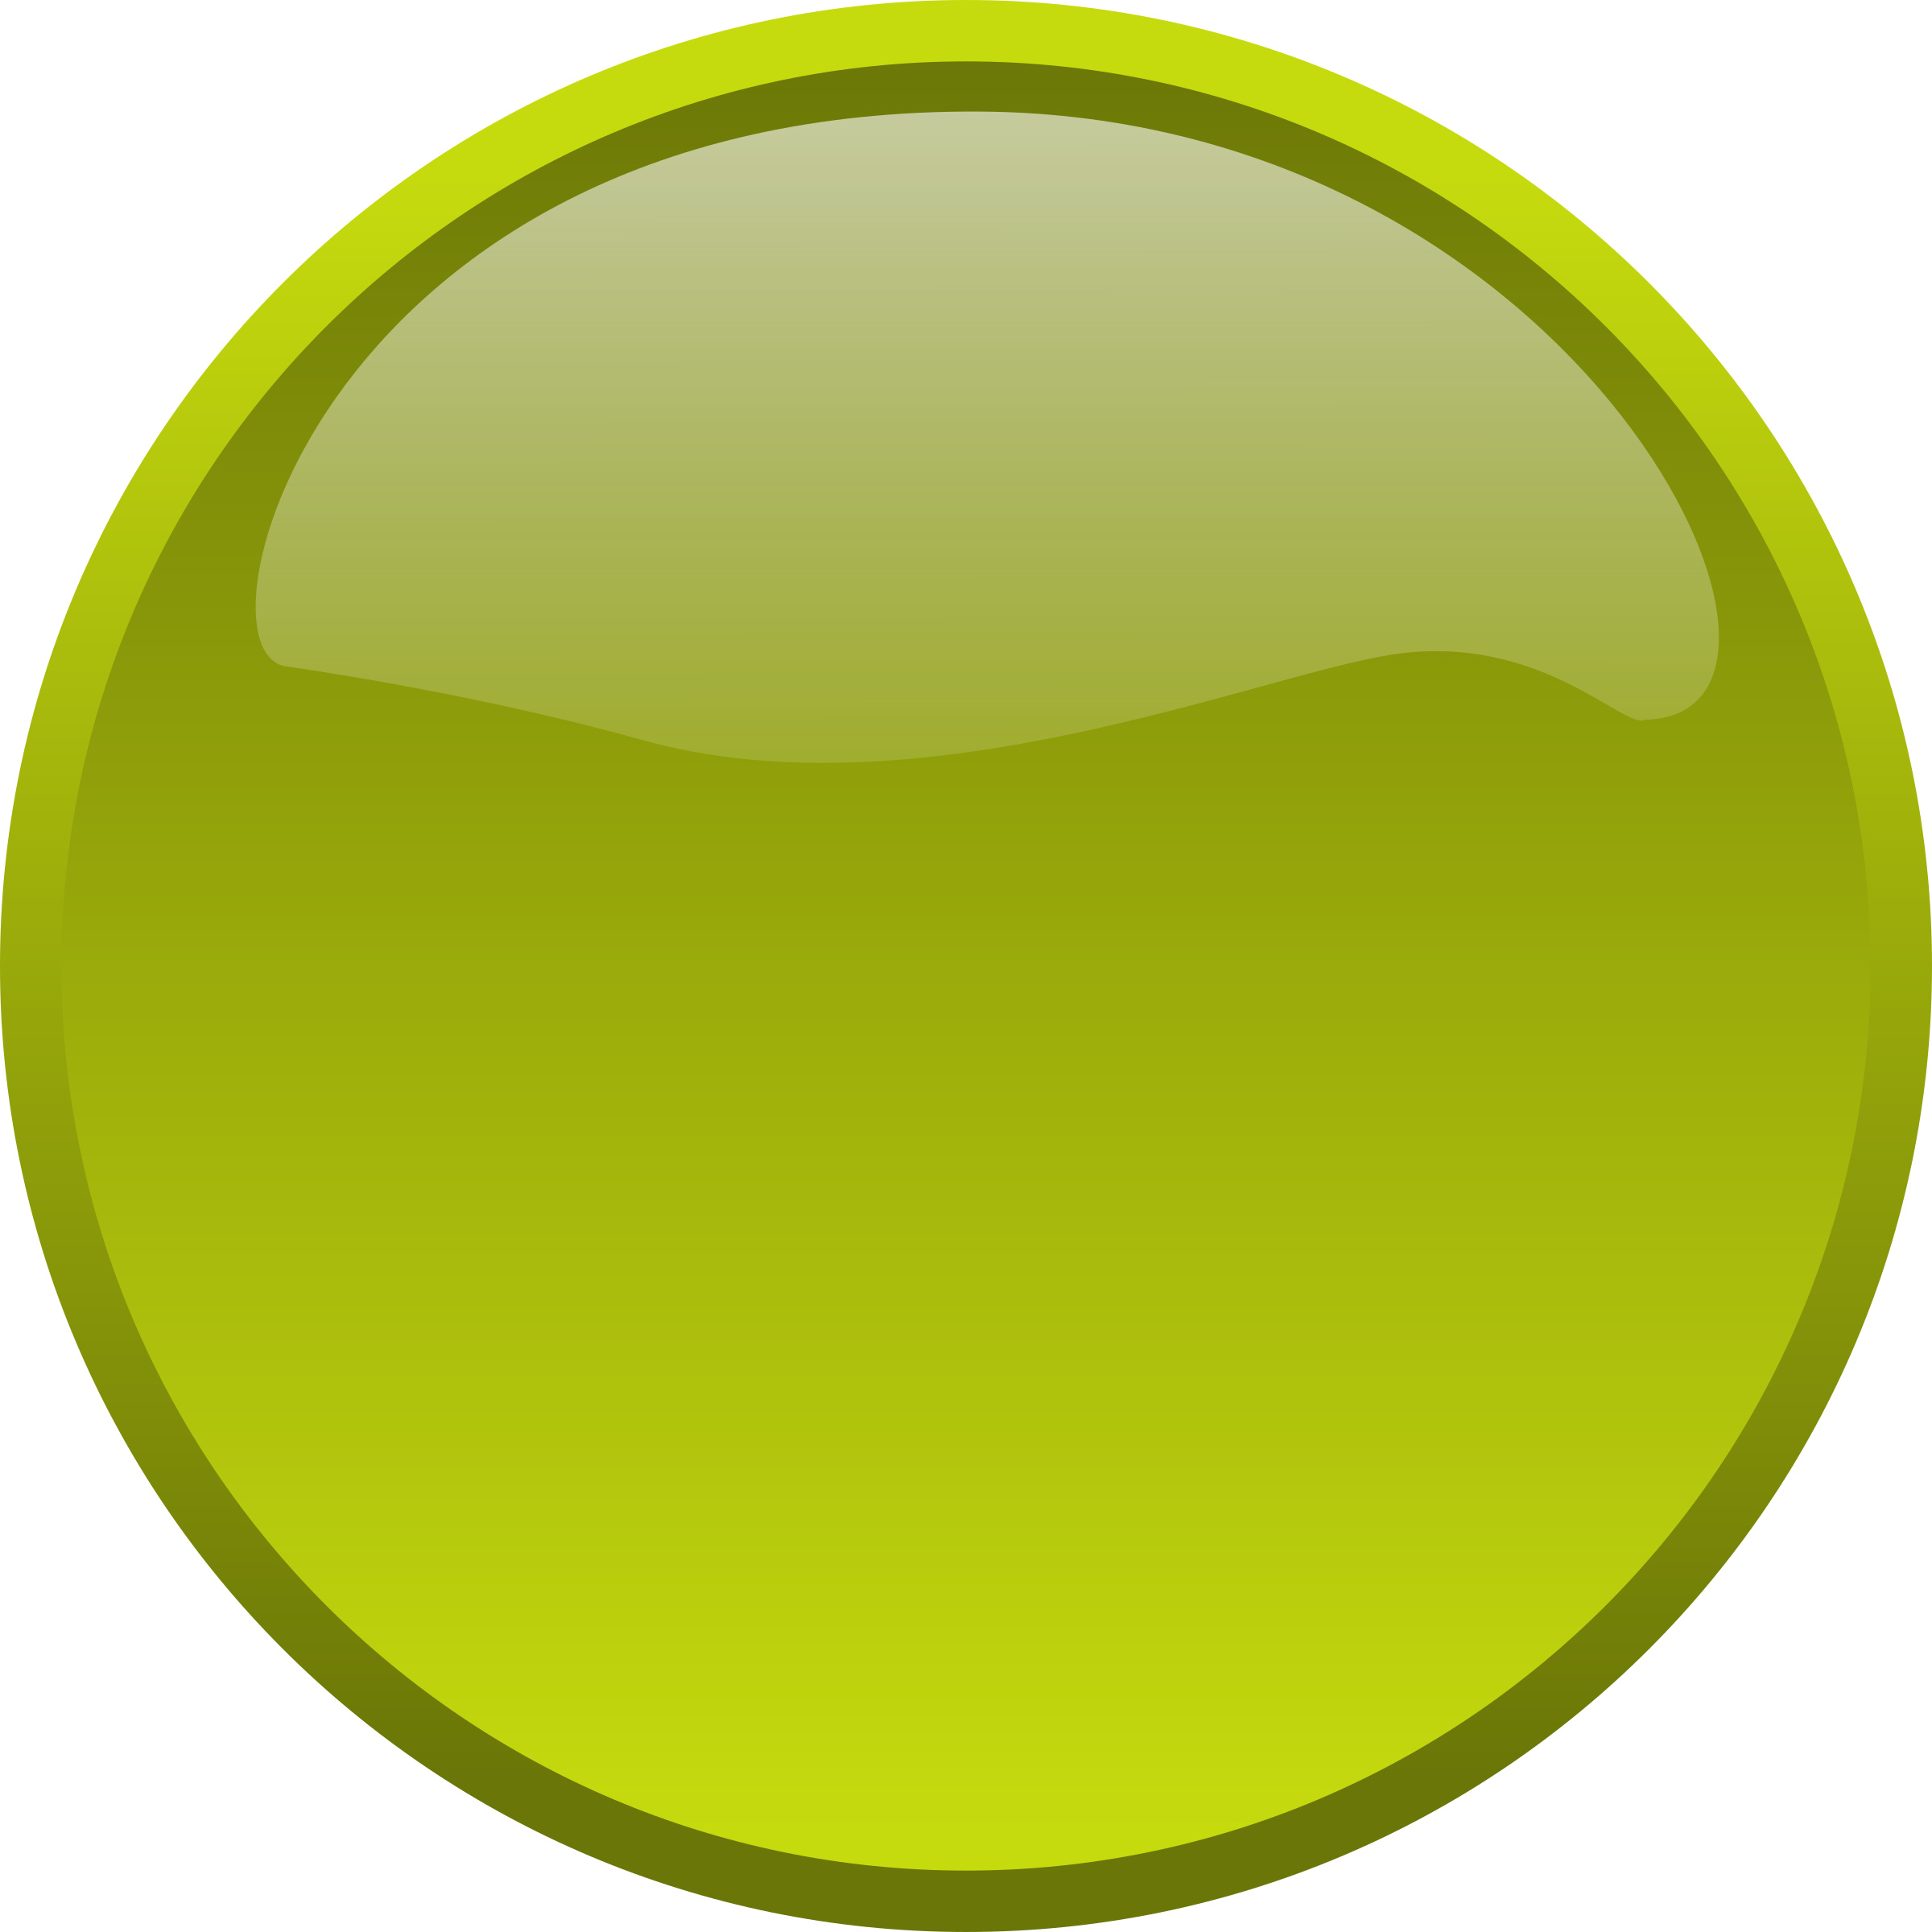 graphic freeuse Button clipart different shape. Yellow big image png.